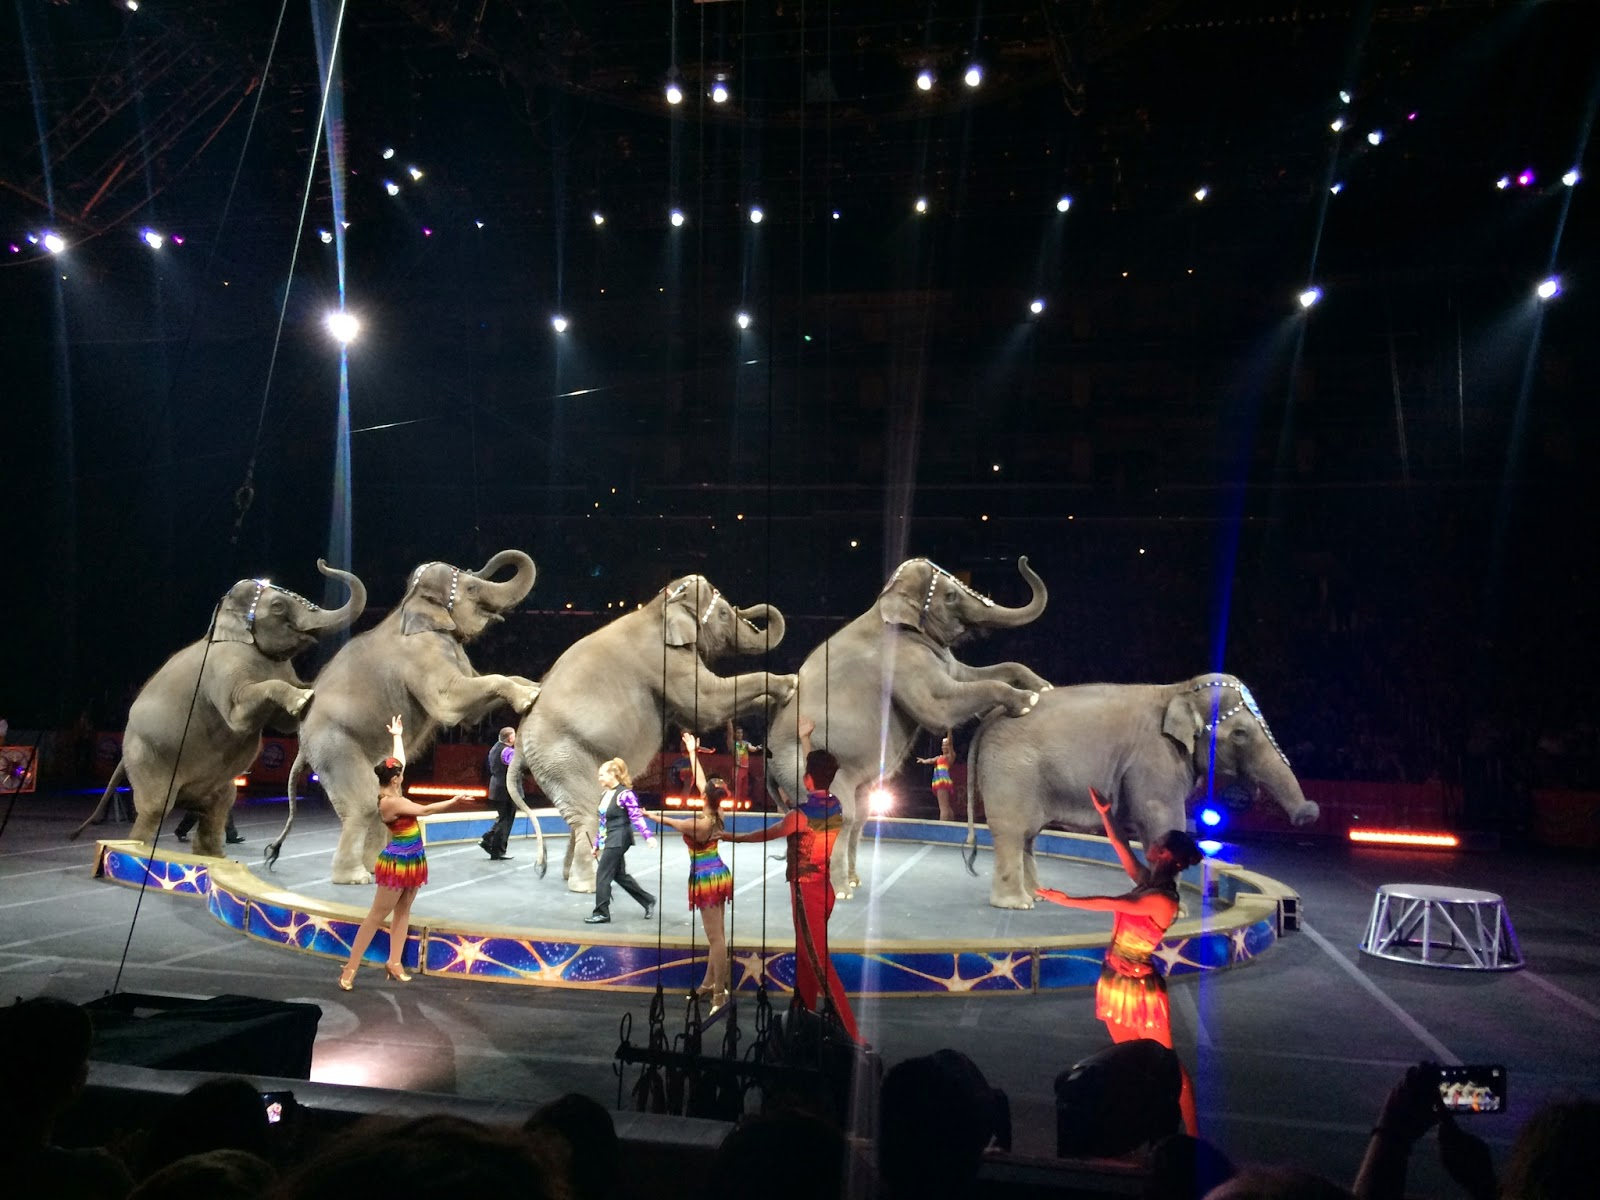 Alexander+Lacey Ringling Bros and Barnum & Bailey Presents Legends Review - Circus Shows